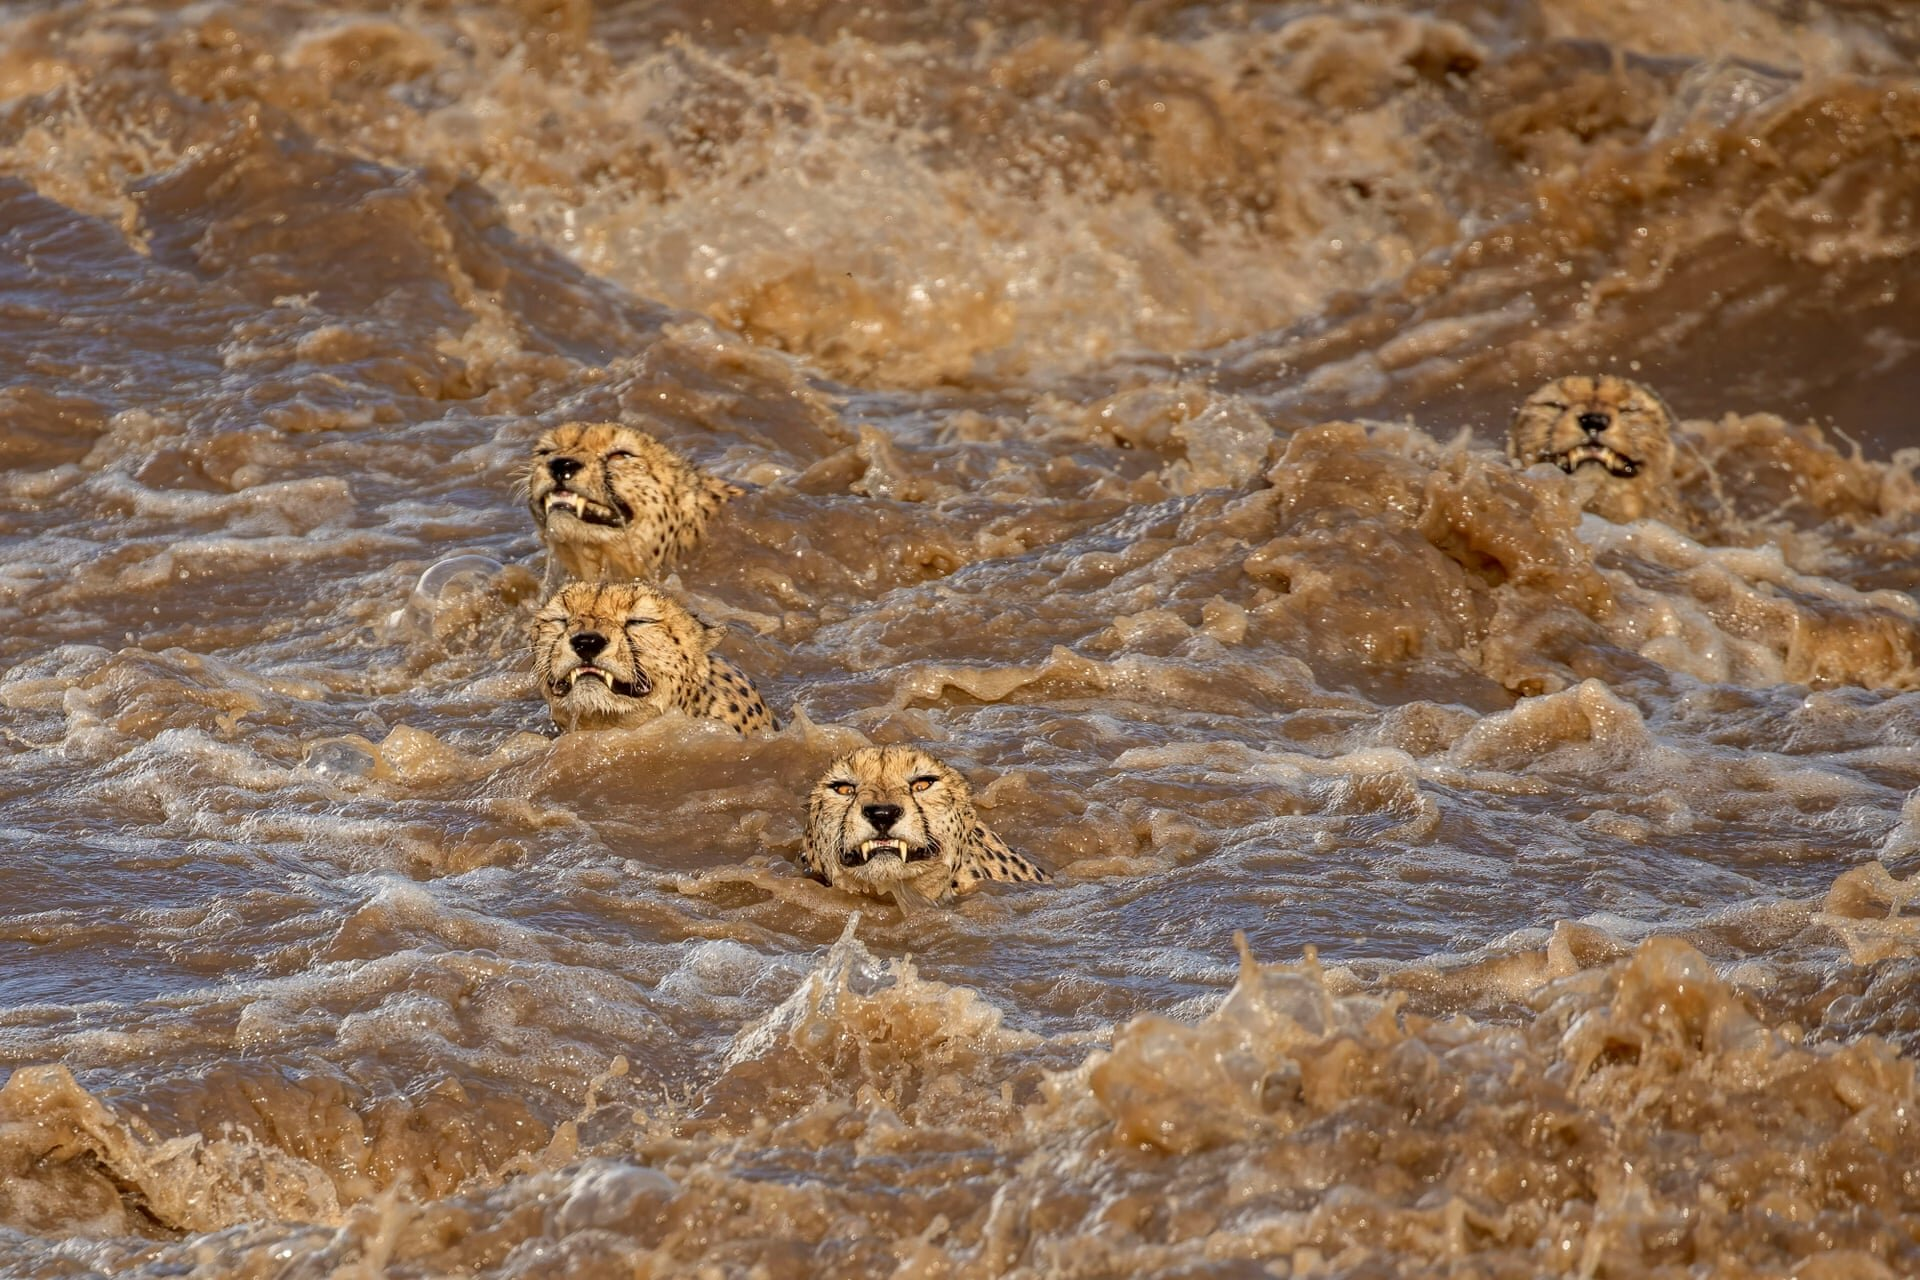 Wildlife first place: Buddhilini de Soyza, AustraliaIncessant rains in the Masai Mara national reserve in Kenya have caused the the Talek river to flood. This group of five male cheetahs, who received the nickname 'Tano Bora' ( the fast five), were looking to cross this river in terrifyingly powerful currents. 'It seemed a task doomed to failure and we were delighted when they made it to the other side,' De Soyza said. 'This was a timely reminder of the damage wreaked by human induced climate change.'Photograph: Buddhilini de Soyza/TNC Photo Contest 2021